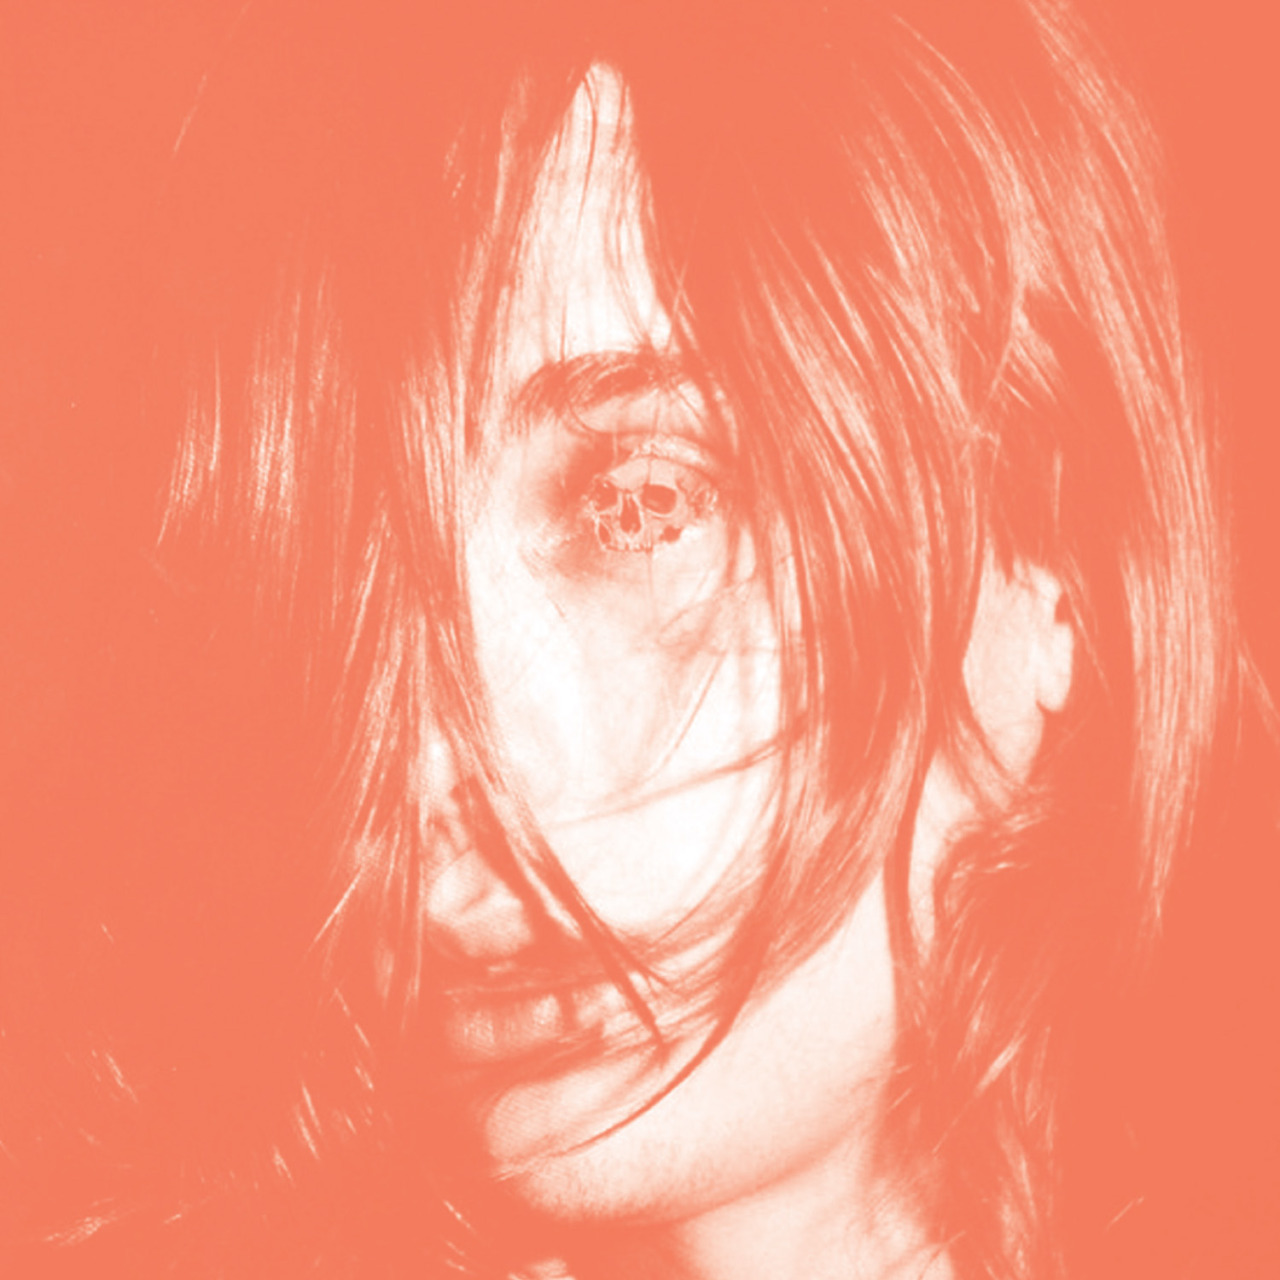 thetrufe:  Deerhunter/Atlas Sound  - All seeing eye